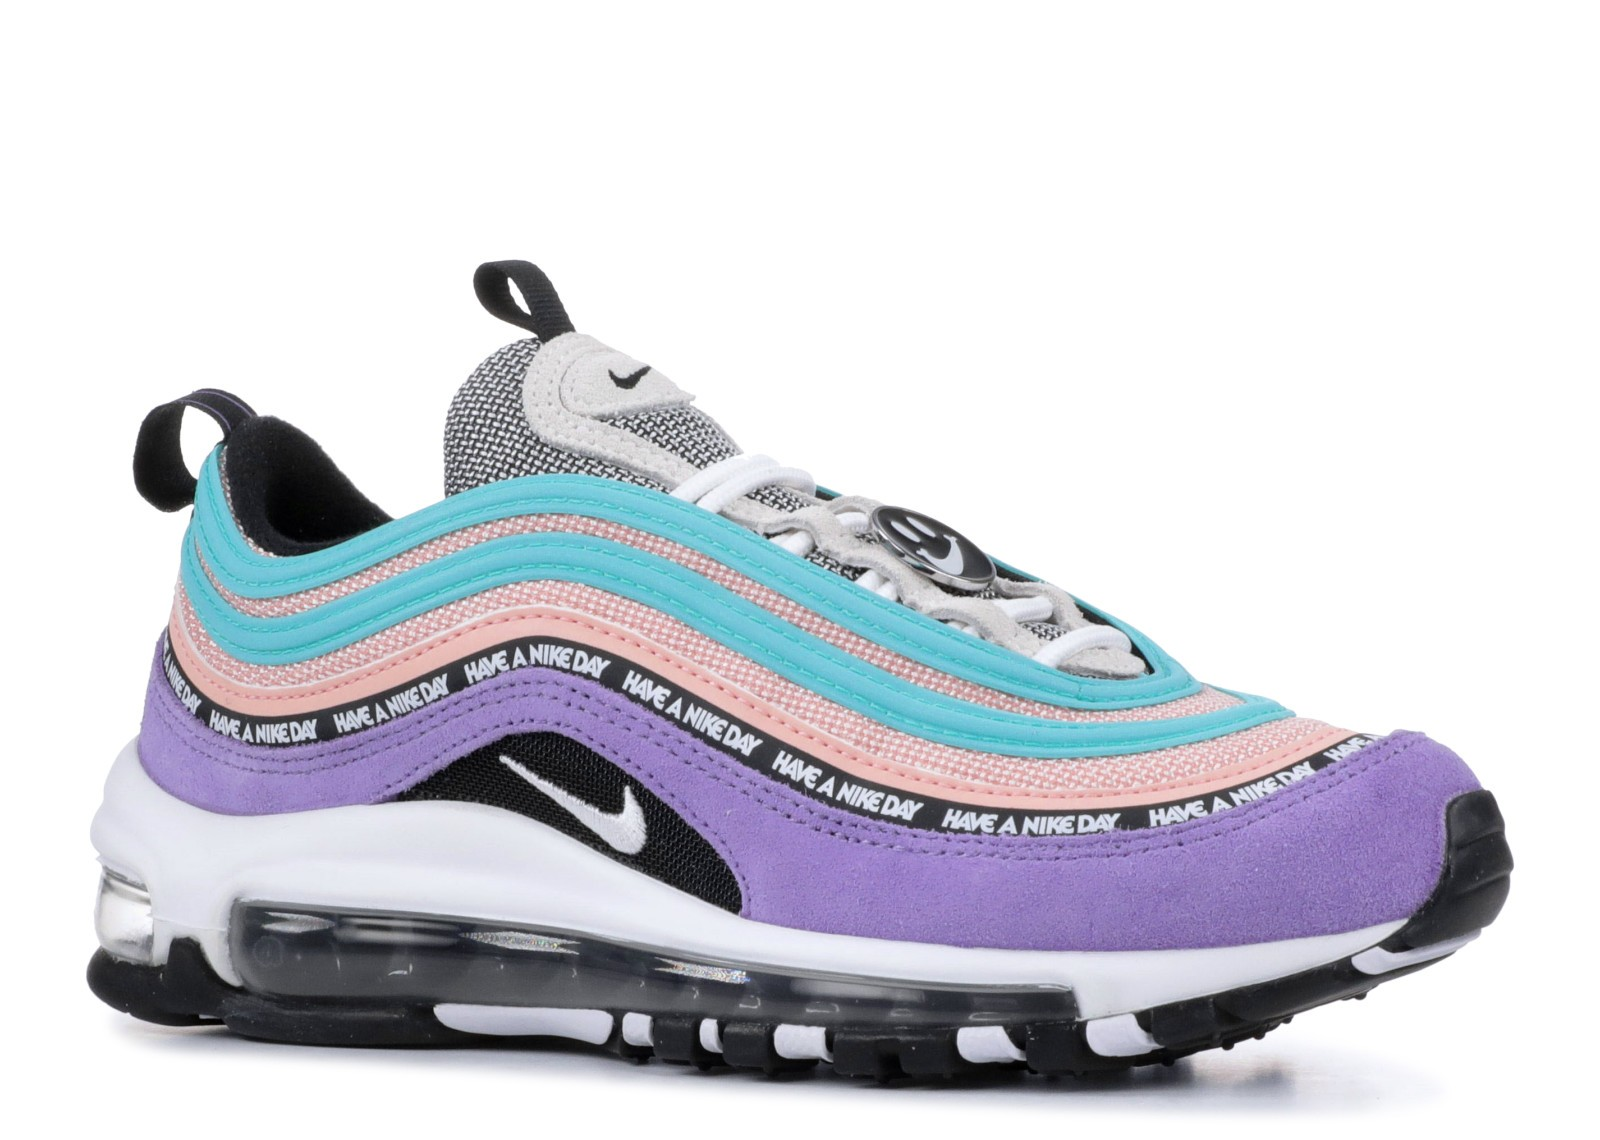 Nike Air Max 97 Have a Nike Day Space Purple White Black 923288 500